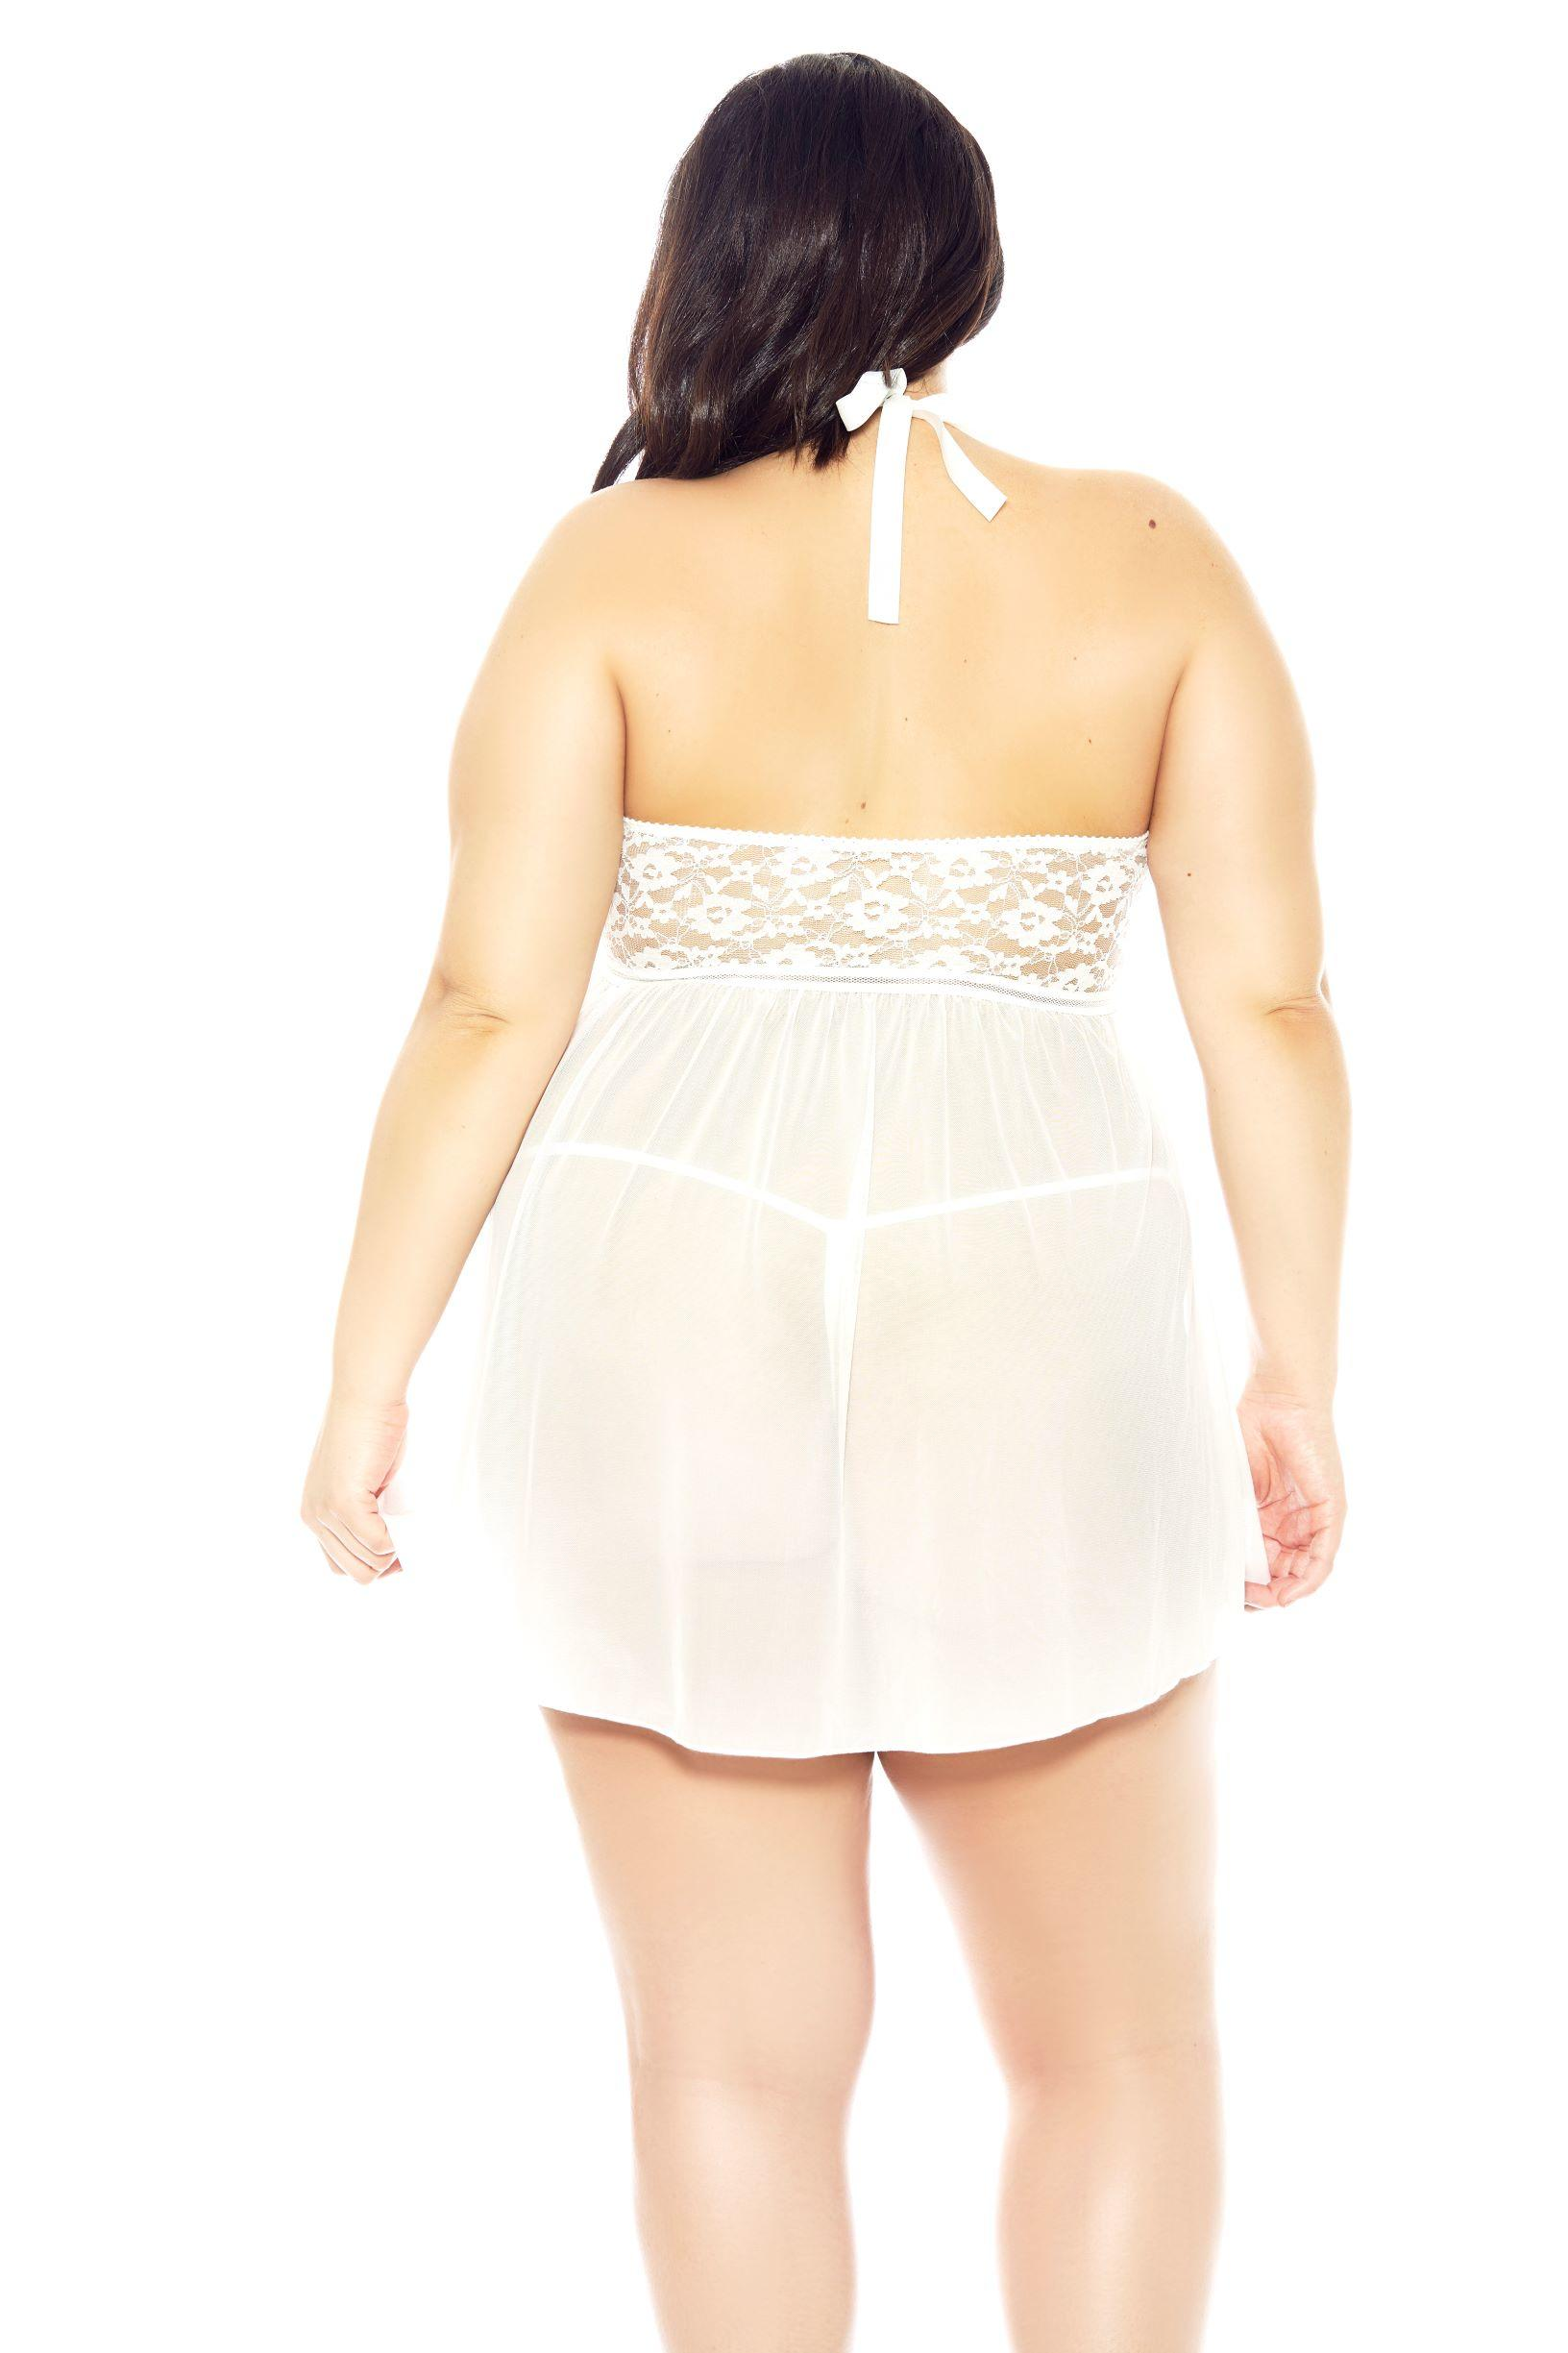 Bella Halterneck White Babydoll rear view